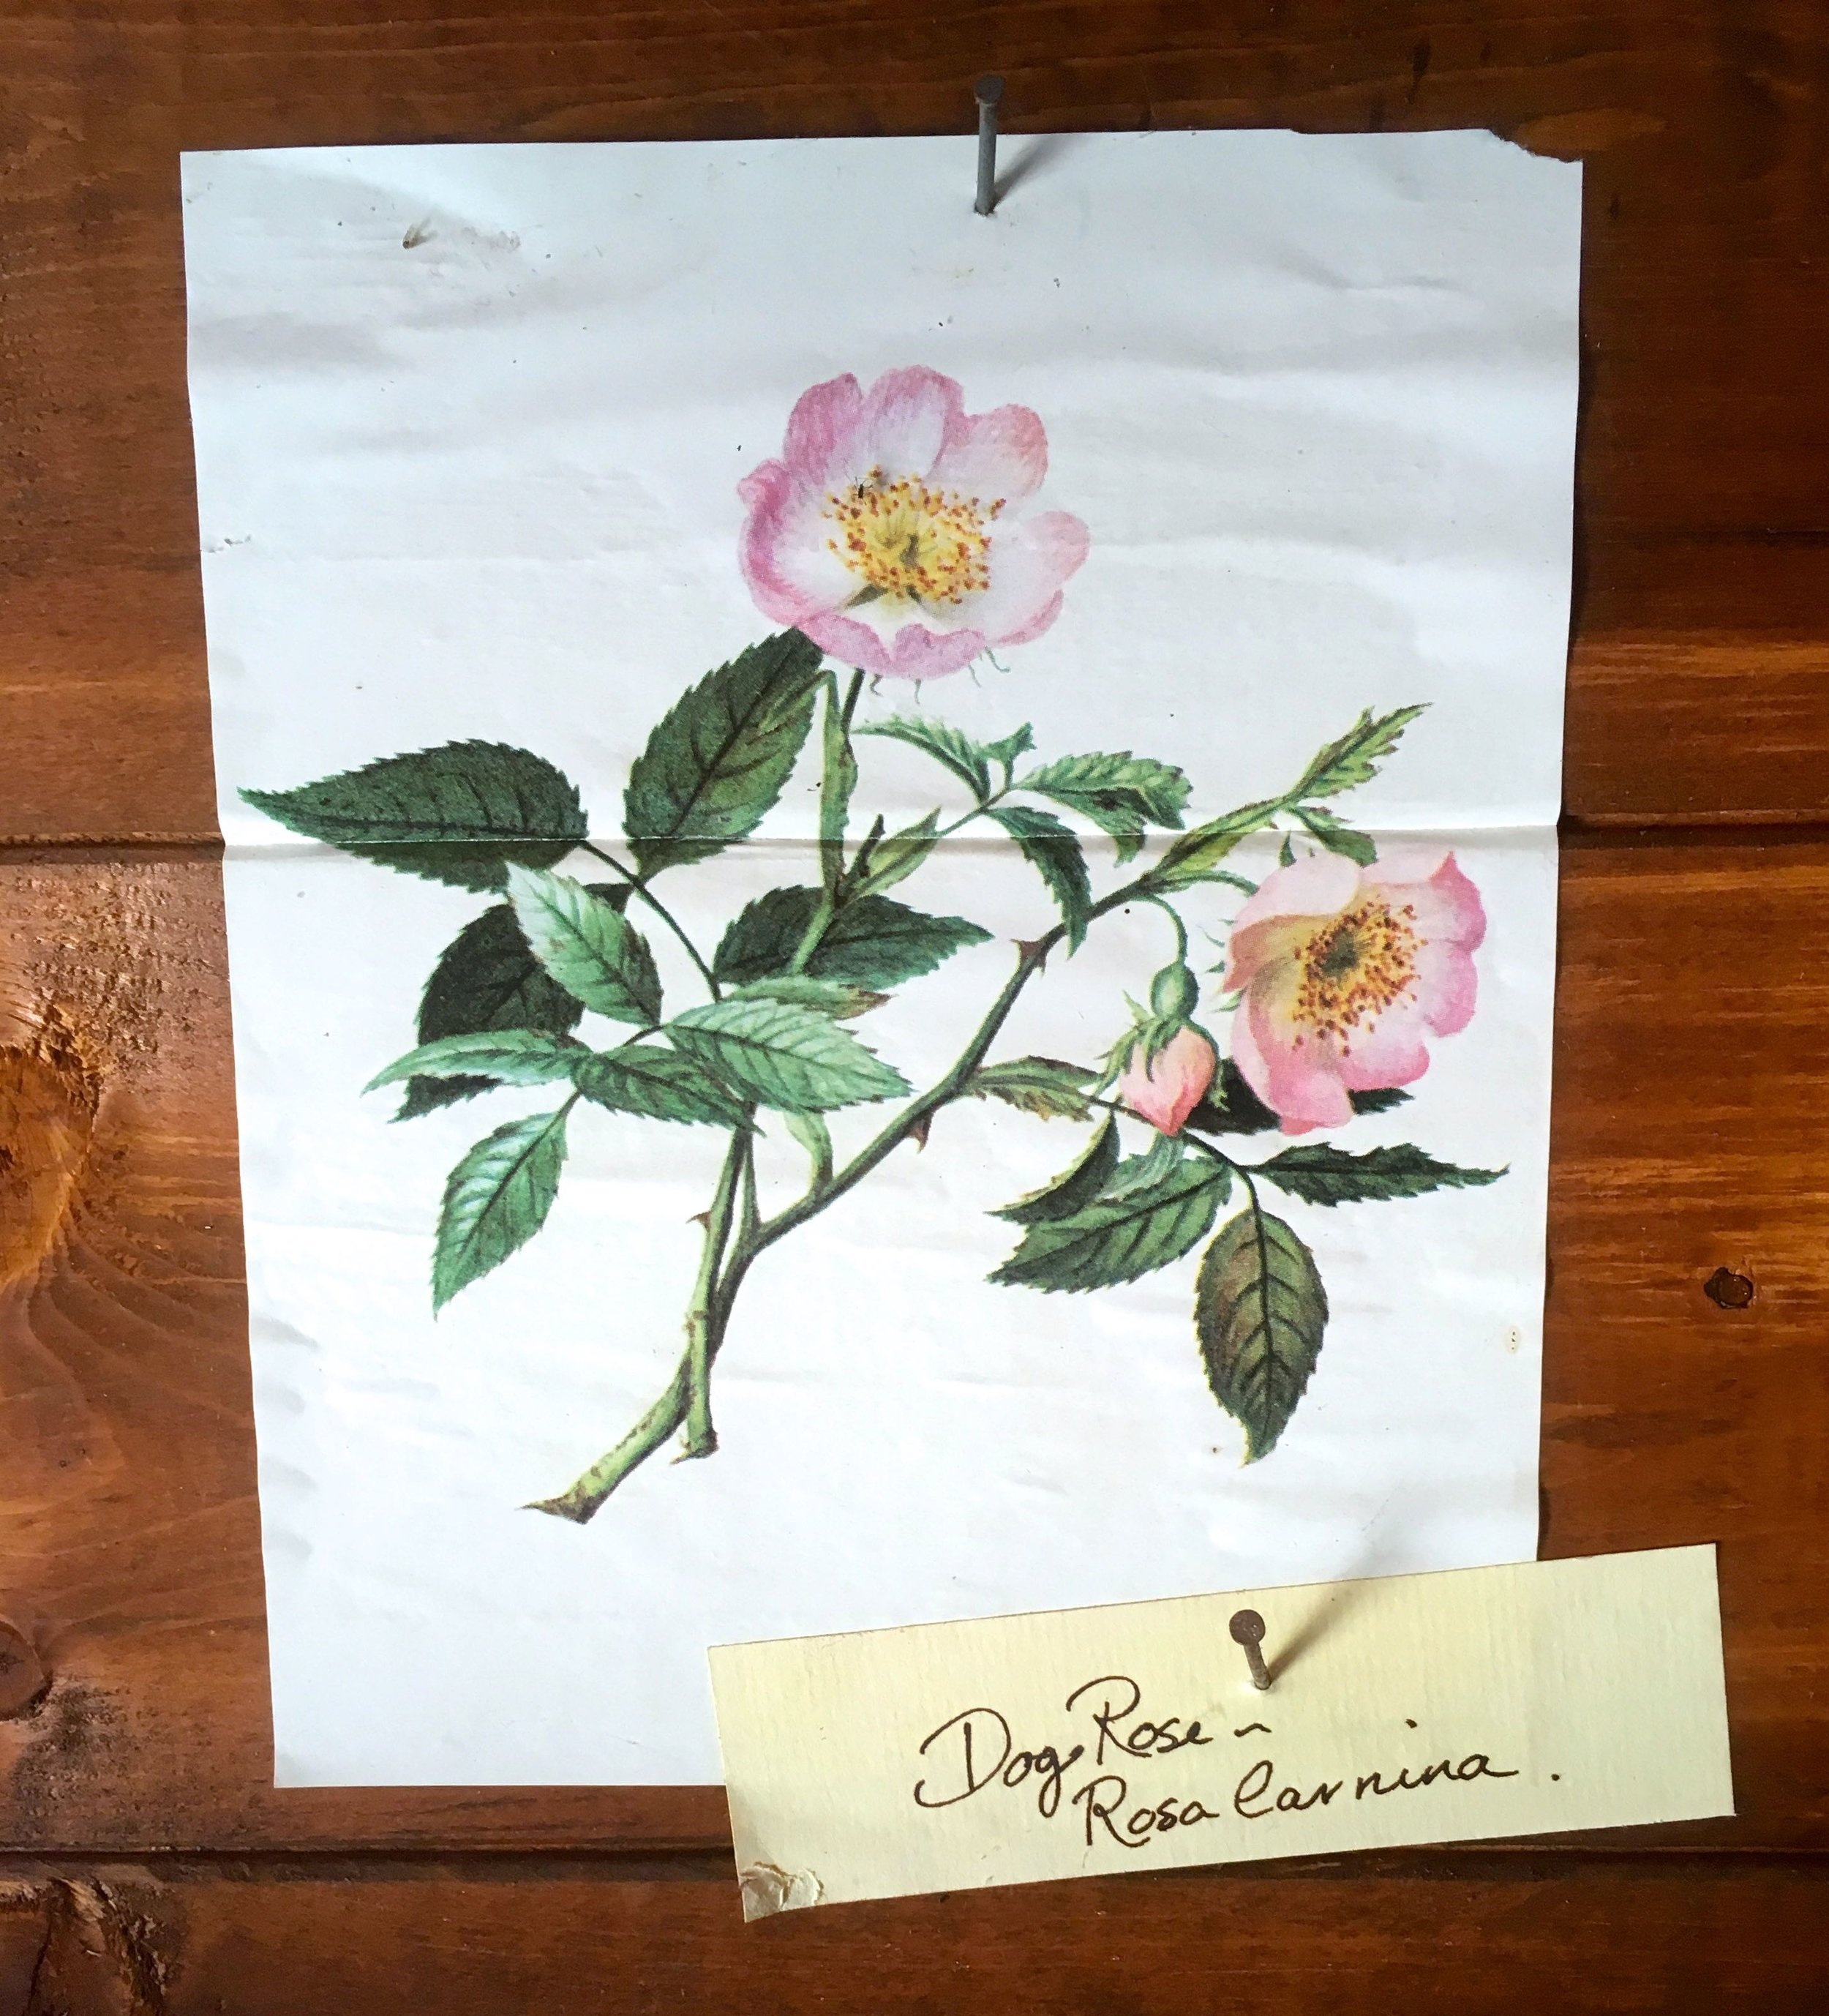 A dog rose painting in the potting shed at Mottisfont